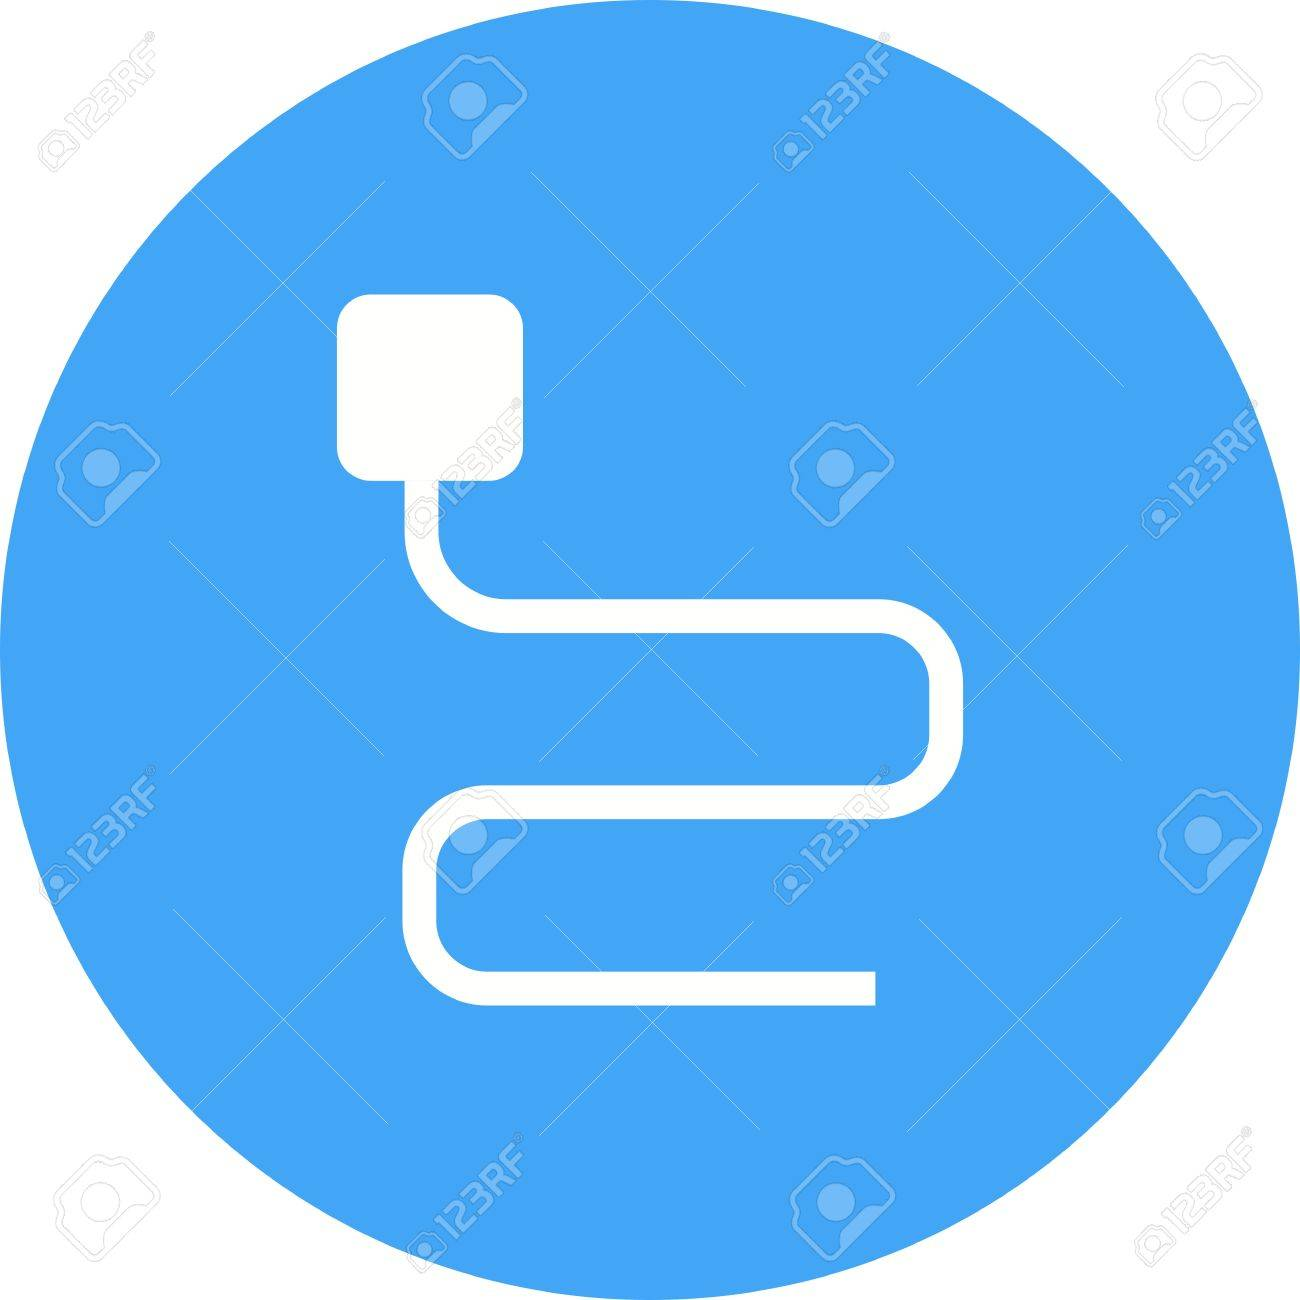 41366225 Cable cord wire icon vector image Can also be used for computer and hardware Suitable for use on web Stock Vector cable, cord, wire icon vector image can also be used for computer icon for writing at gsmportal.co